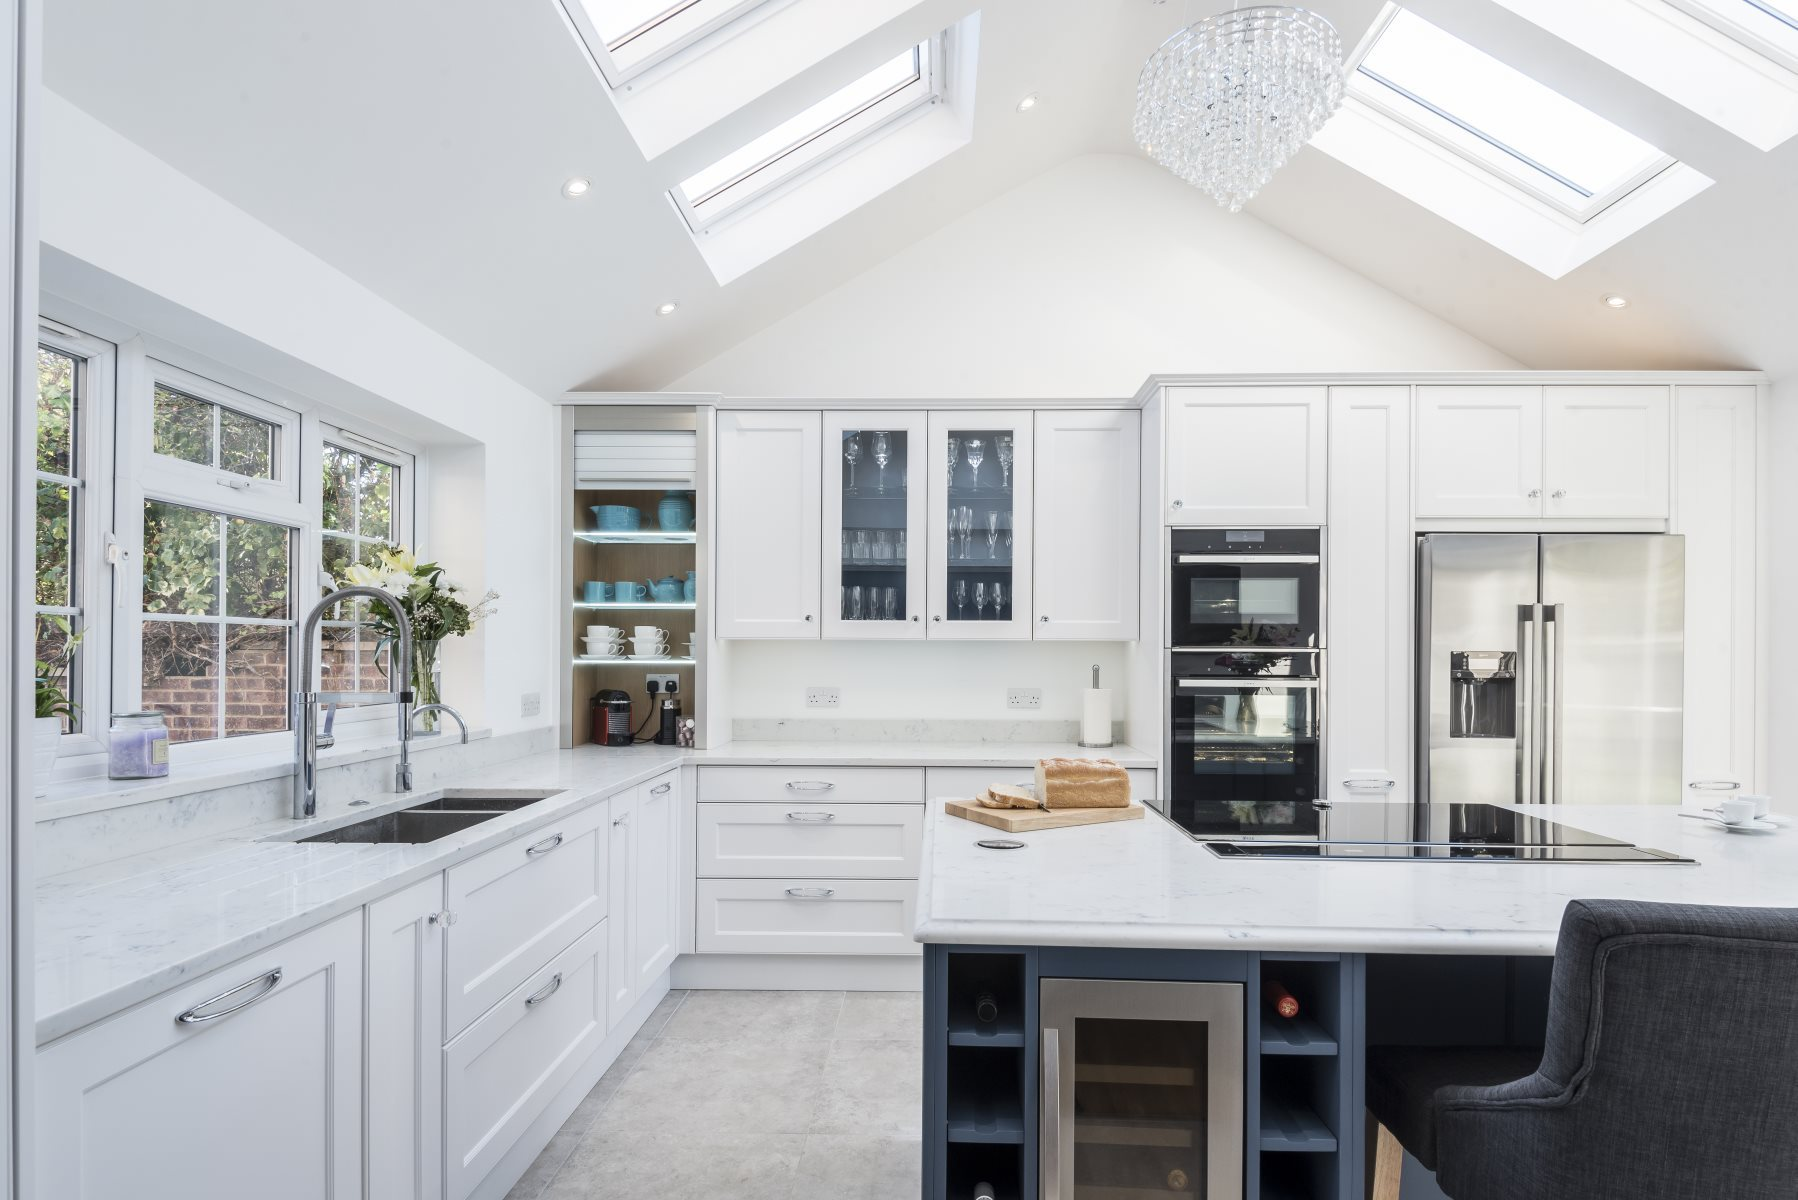 Bespoke Timeless Kitchens In Maidenhead Anthony Mullan